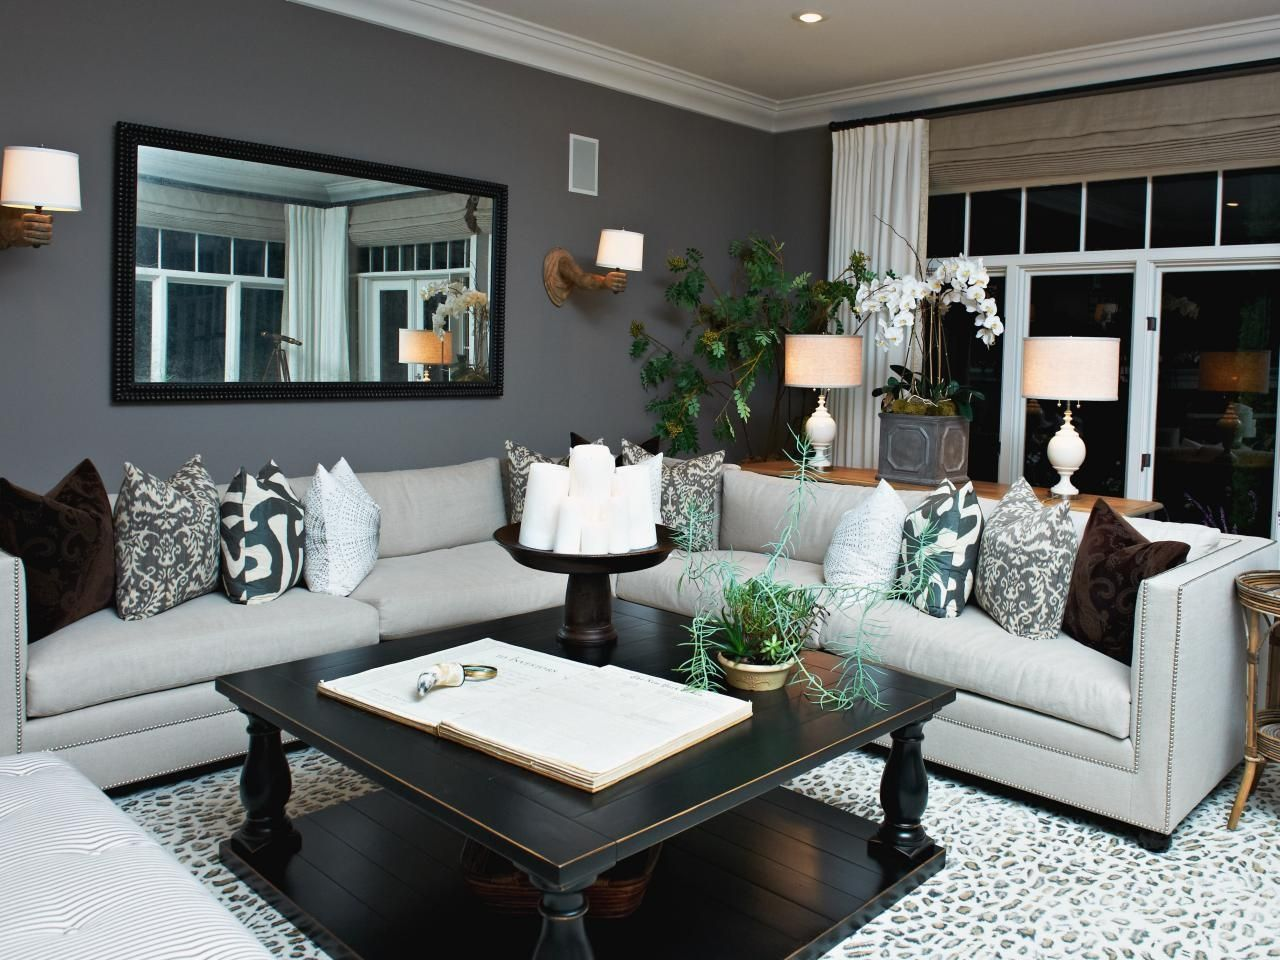 living room decorating ideas designer curtains for 10 cozy your home decoration gray with bold accents hgtv pertaining to rooms renovation